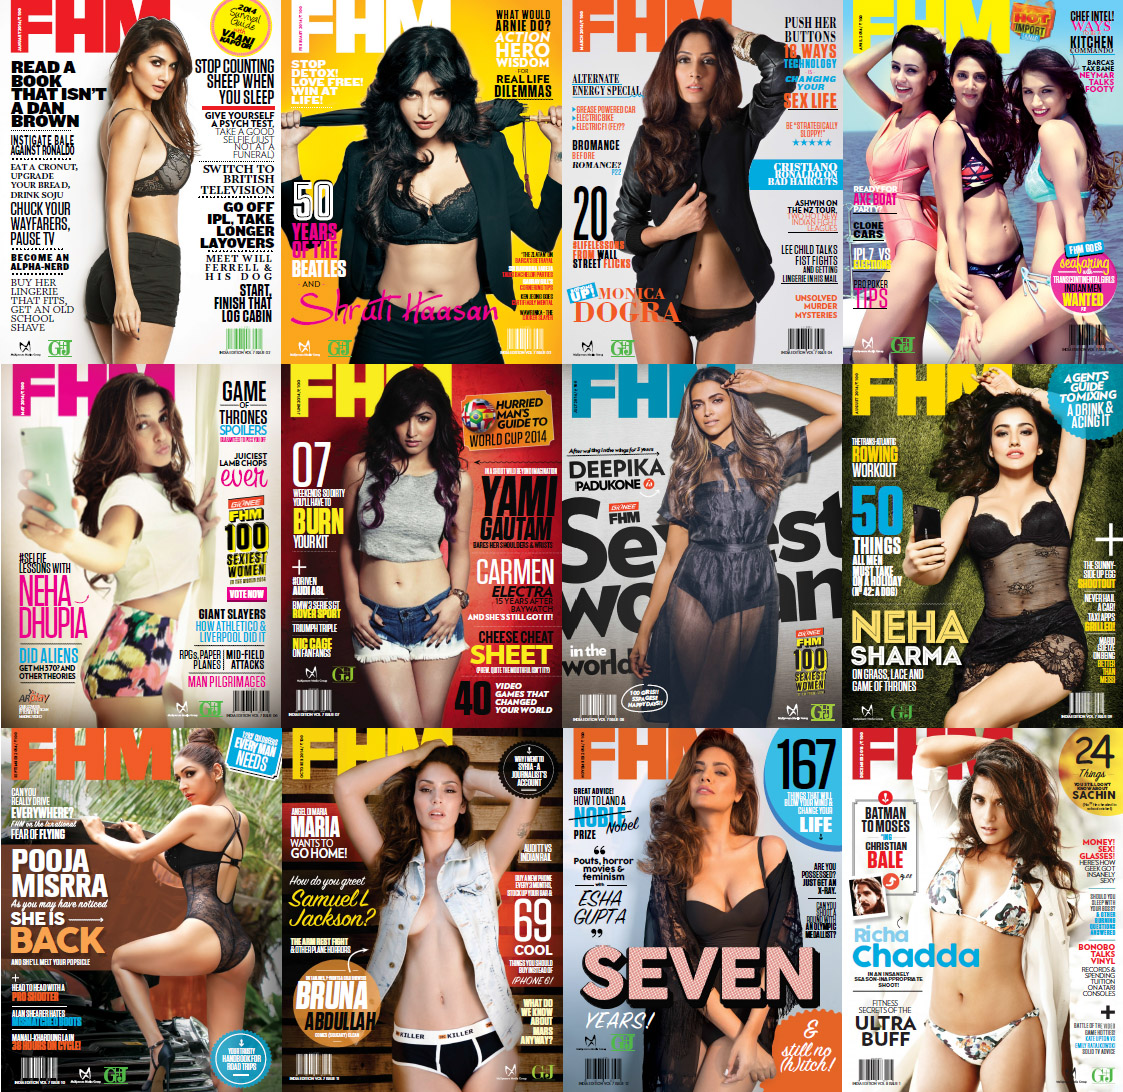 FHM India Magazine - 2014 Full Year Issues Collection free download